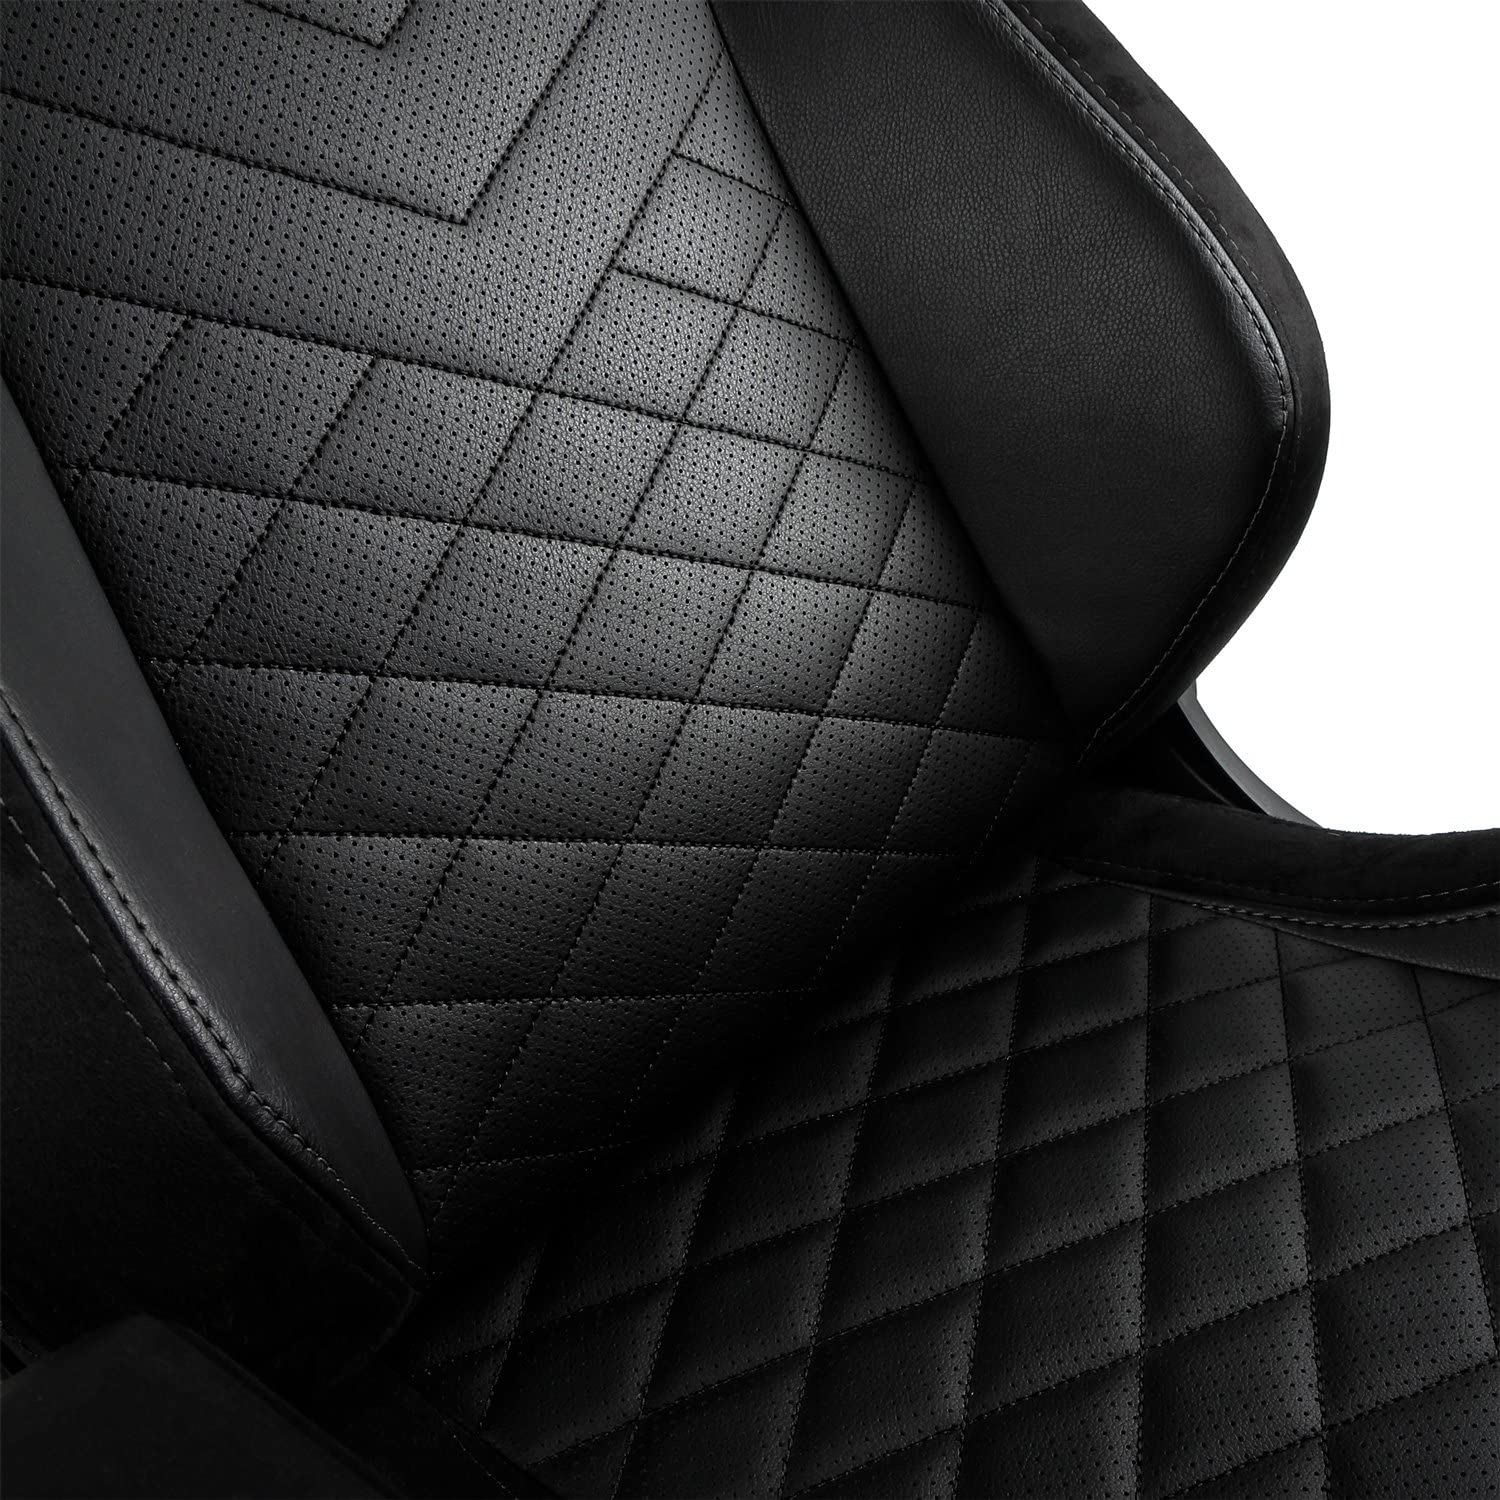 NOBLECHAIRS EPIC BLACK GAMING CHAIR - NBL-PU-BLA-002